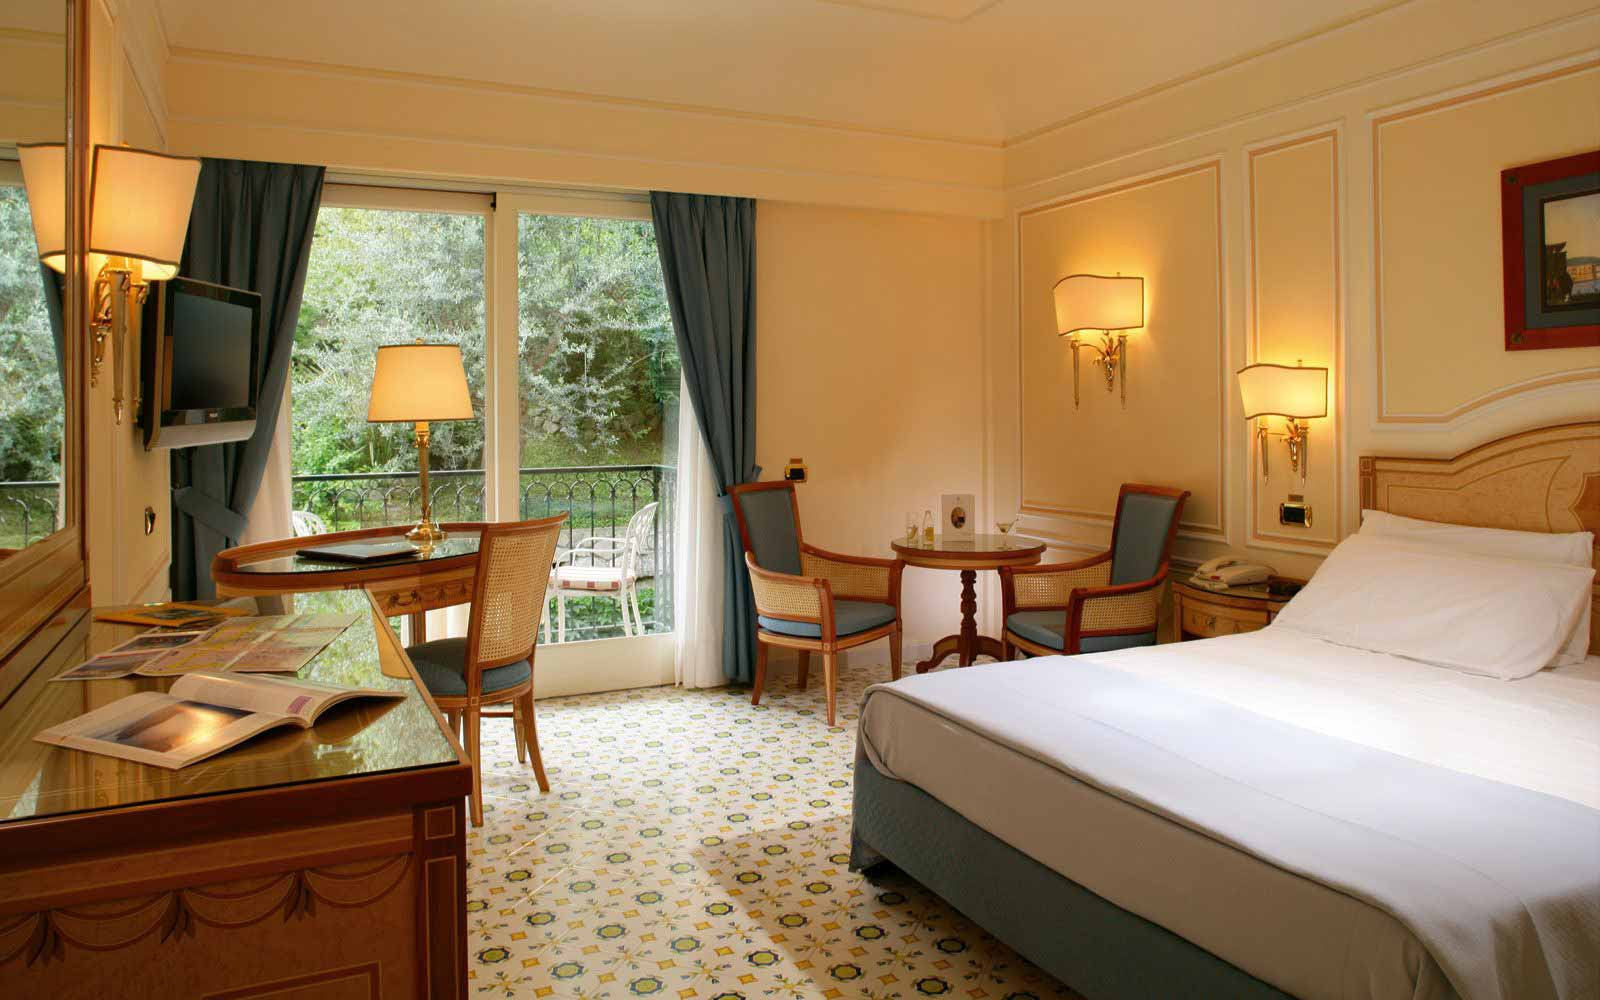 Classic Room with balcony at Grand Hotel Capodimonte